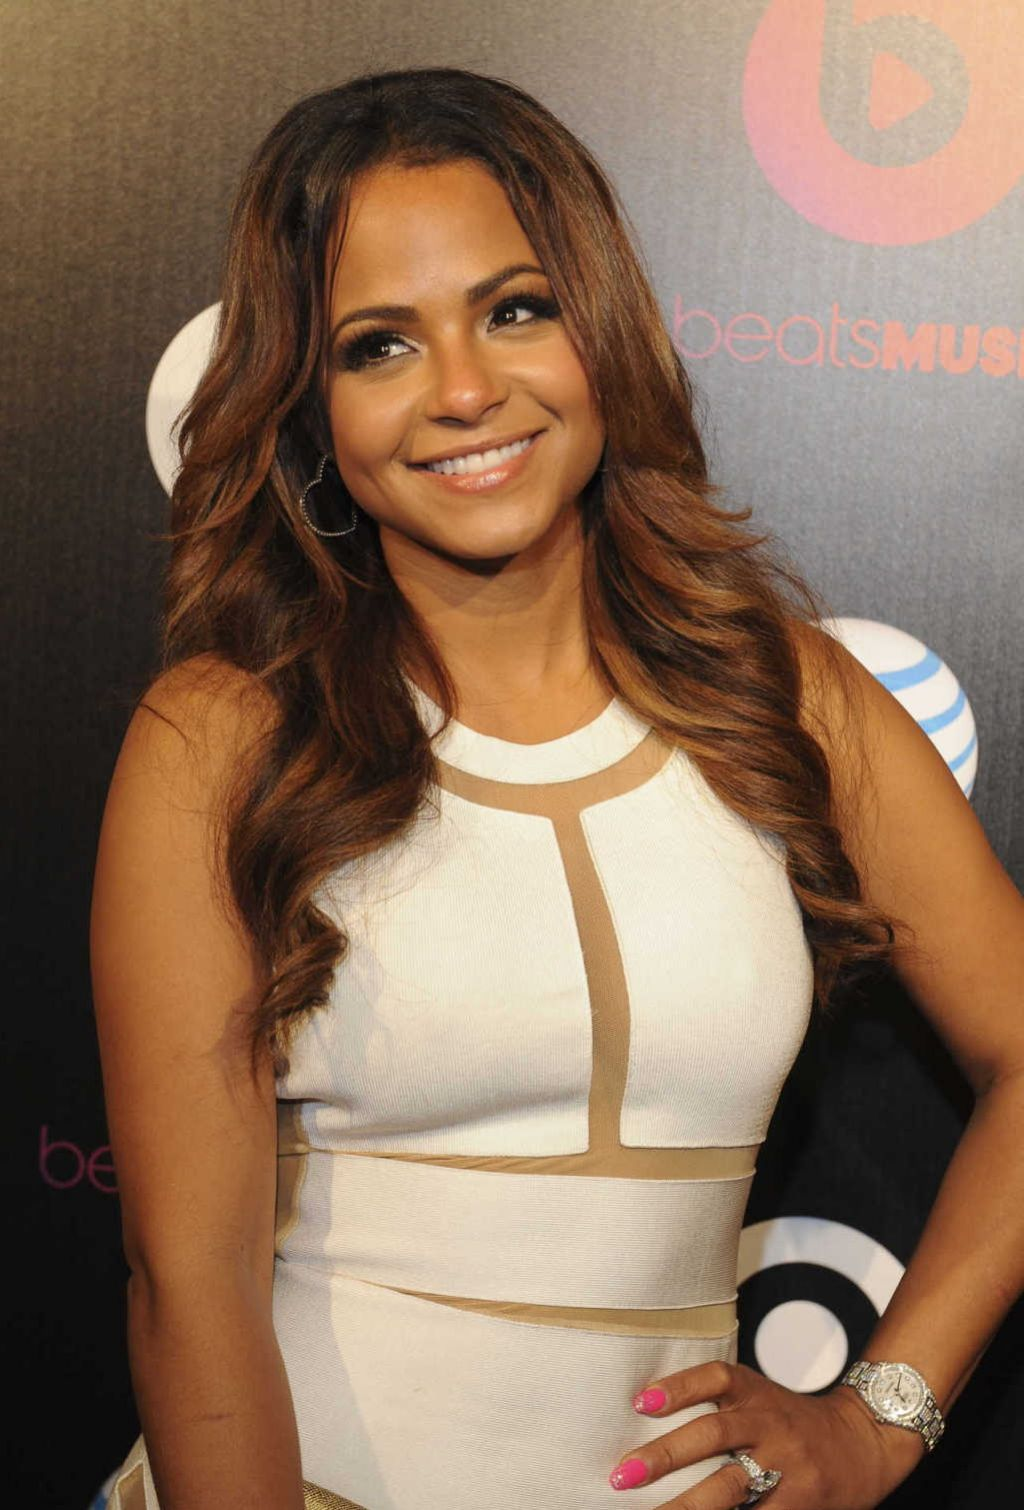 Christina Milian at Beats Music Launch Party in Los Angeles, January 2014